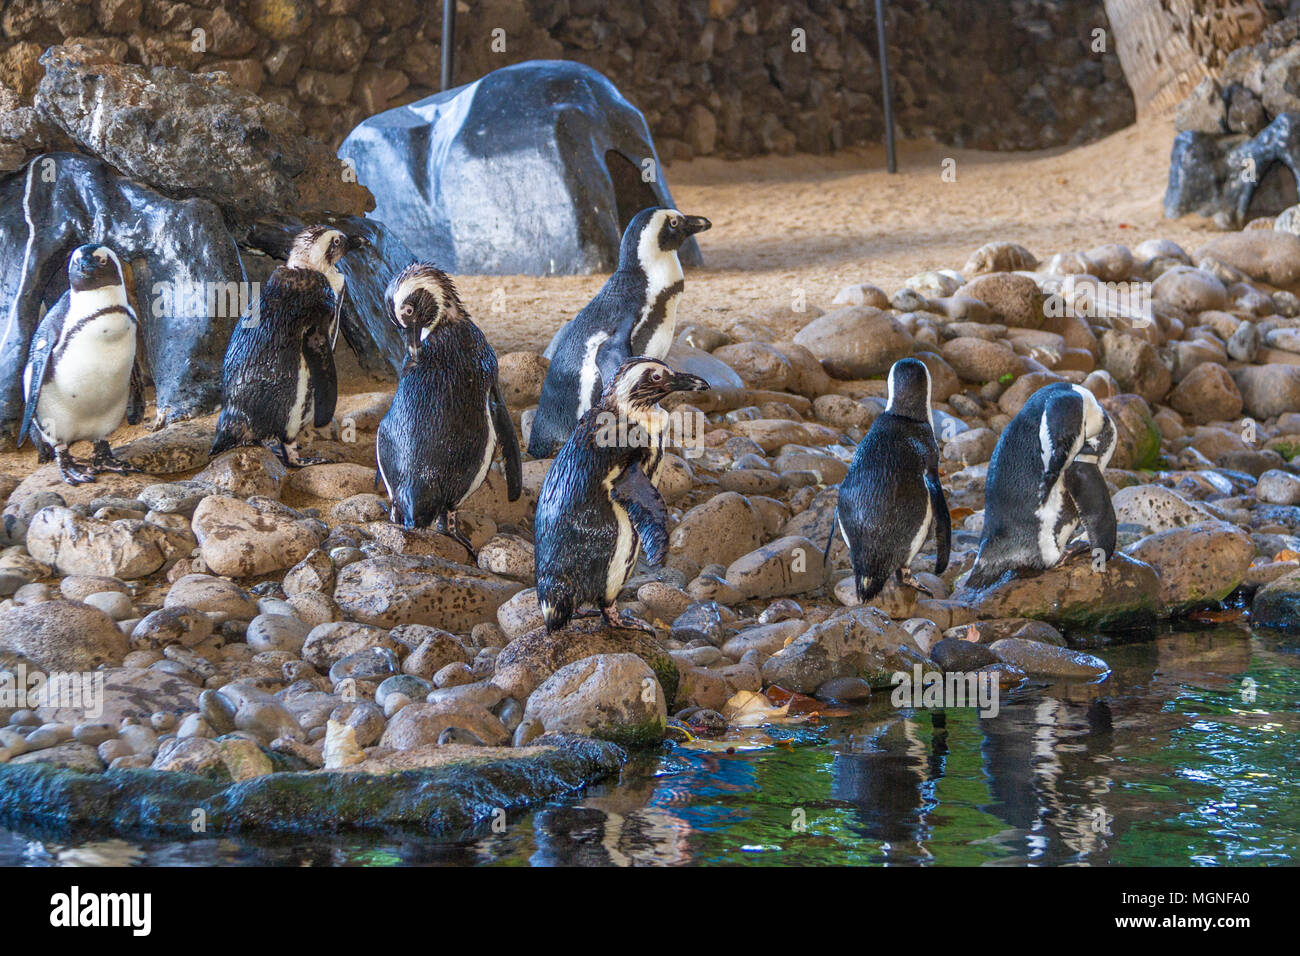 African Penguin (Spheniscus demersus), also known as the African Black-footed Penguin is a species of endangered penguin. - Stock Image